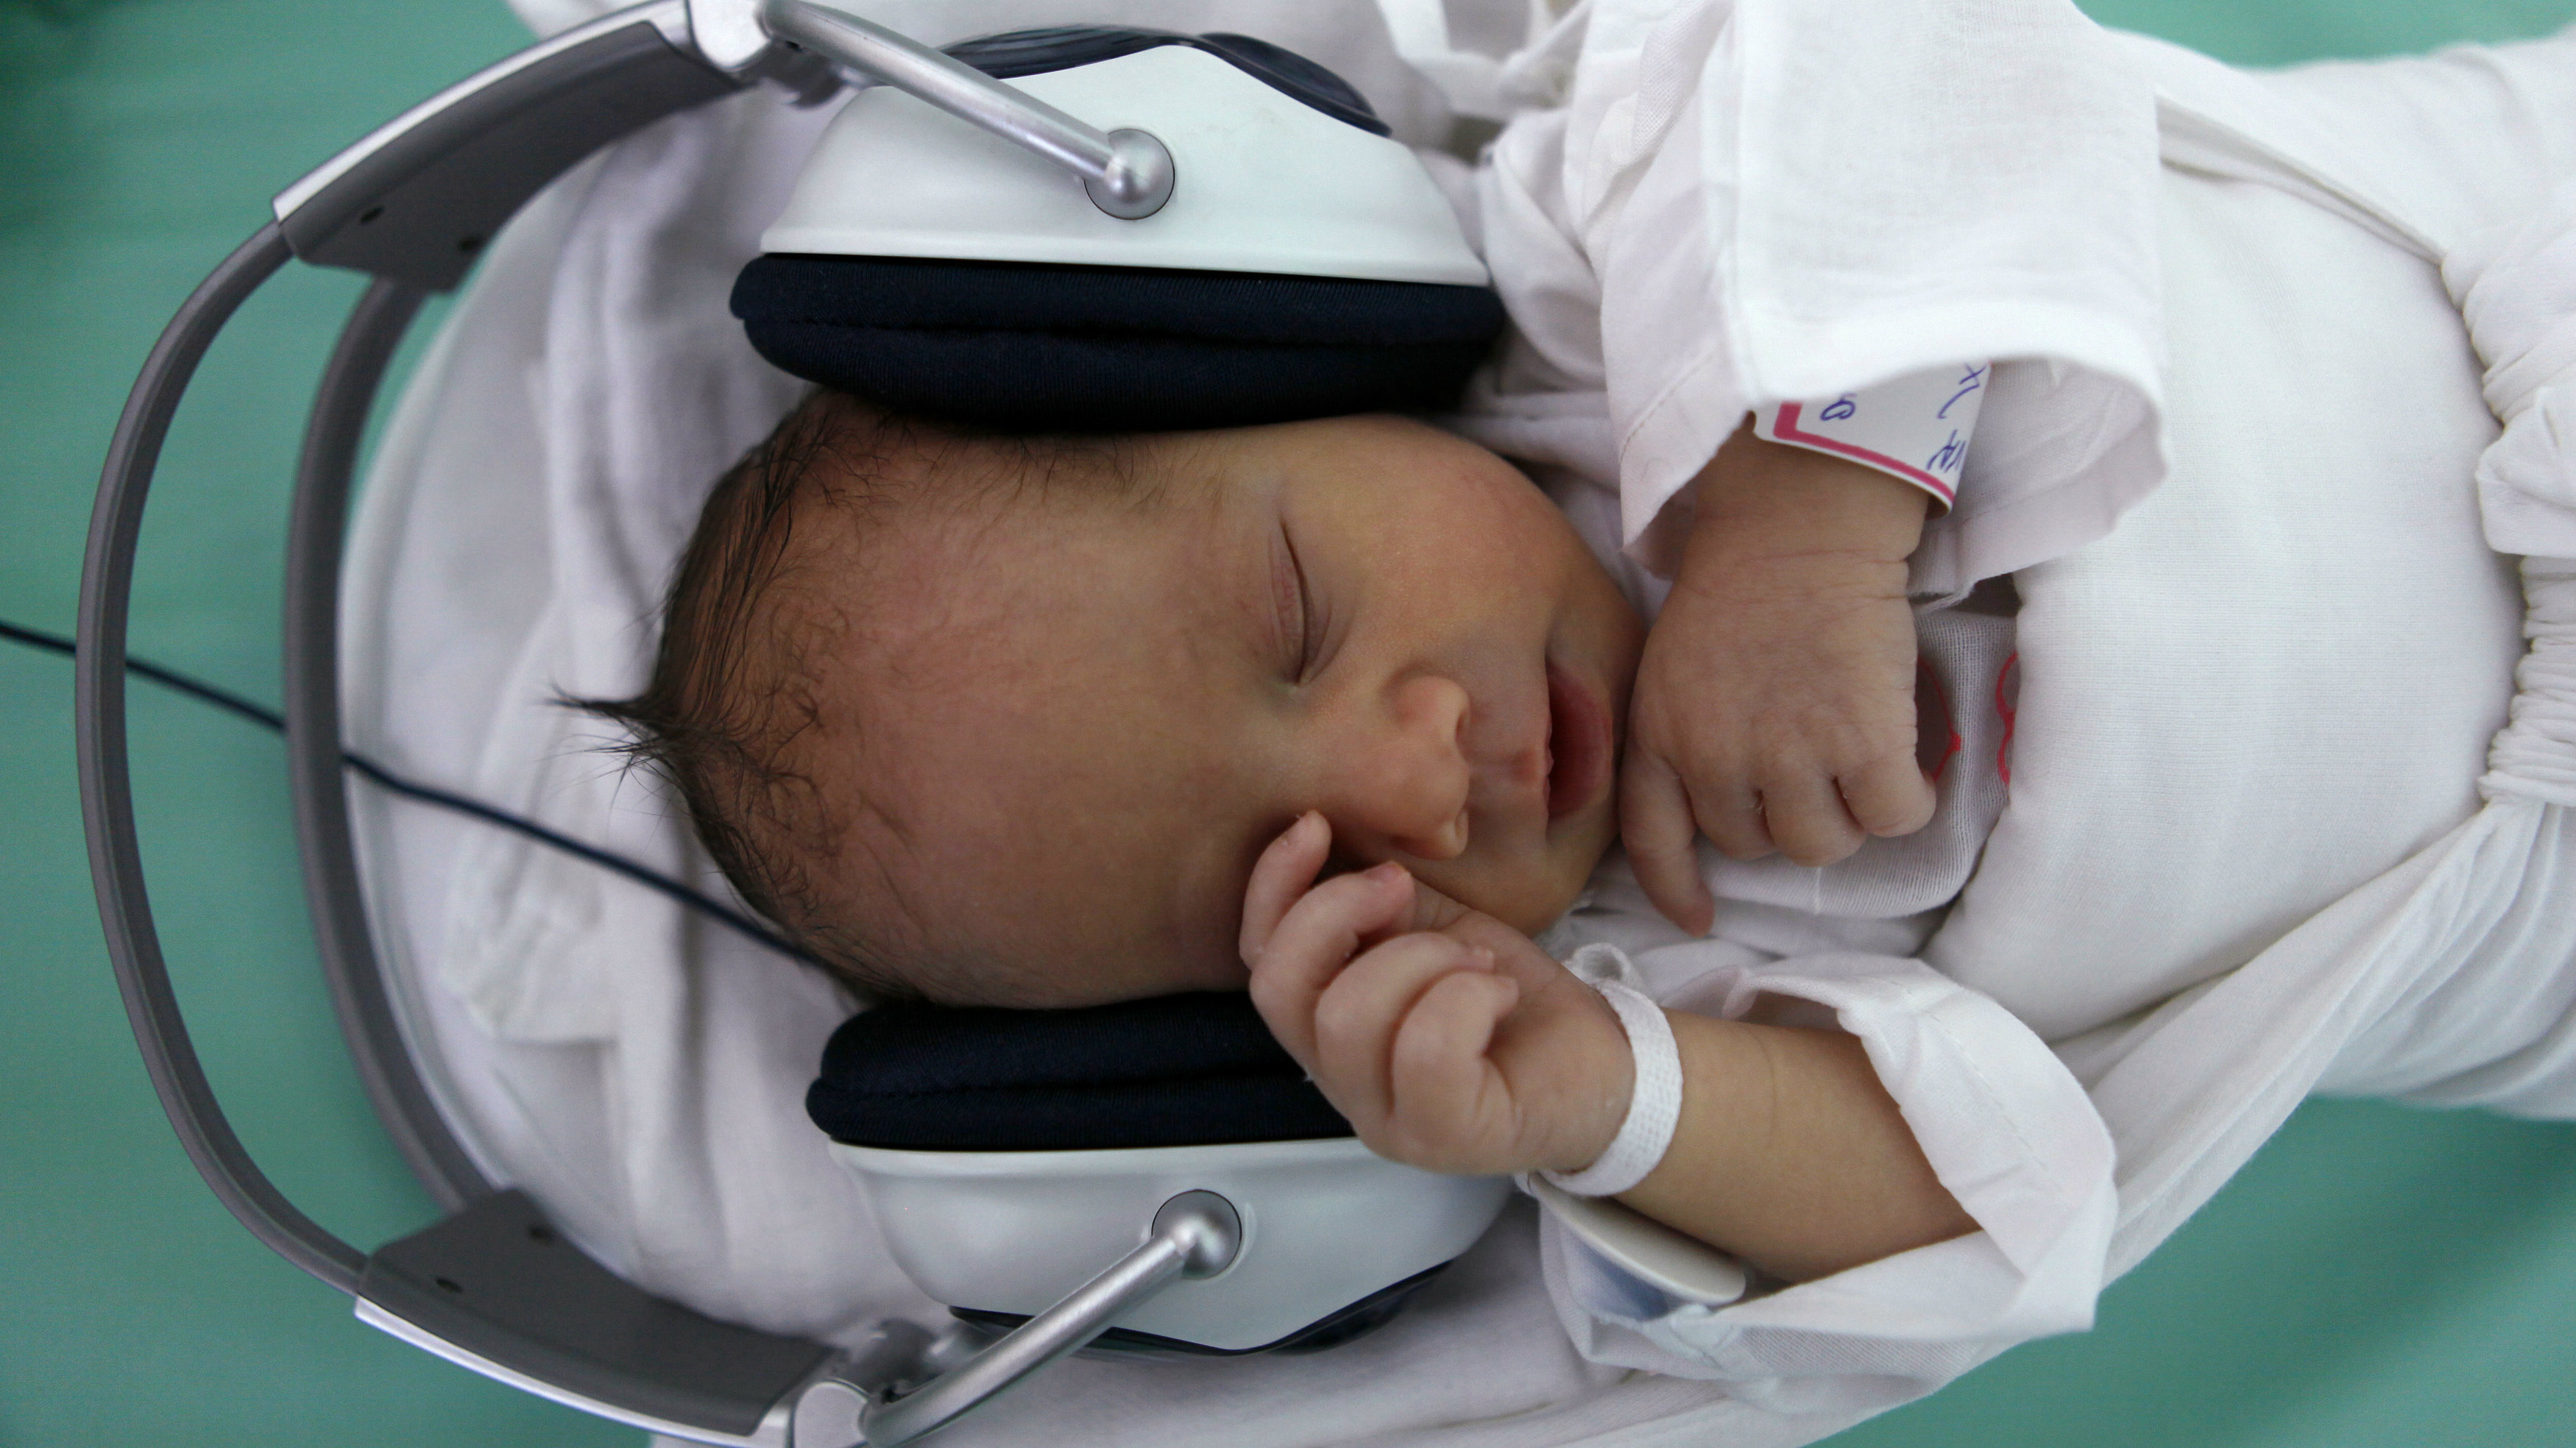 A newborn baby rests in a box, listening to music played through earphones in Saca Hospital in Kosice, east Slovakia May 25, 2011. The hospital uses music as therapy for newborn babies when they are separated from their mothers. REUTERS/Petr Josek (SLOVAKIA - Tags: HEALTH SOCIETY)